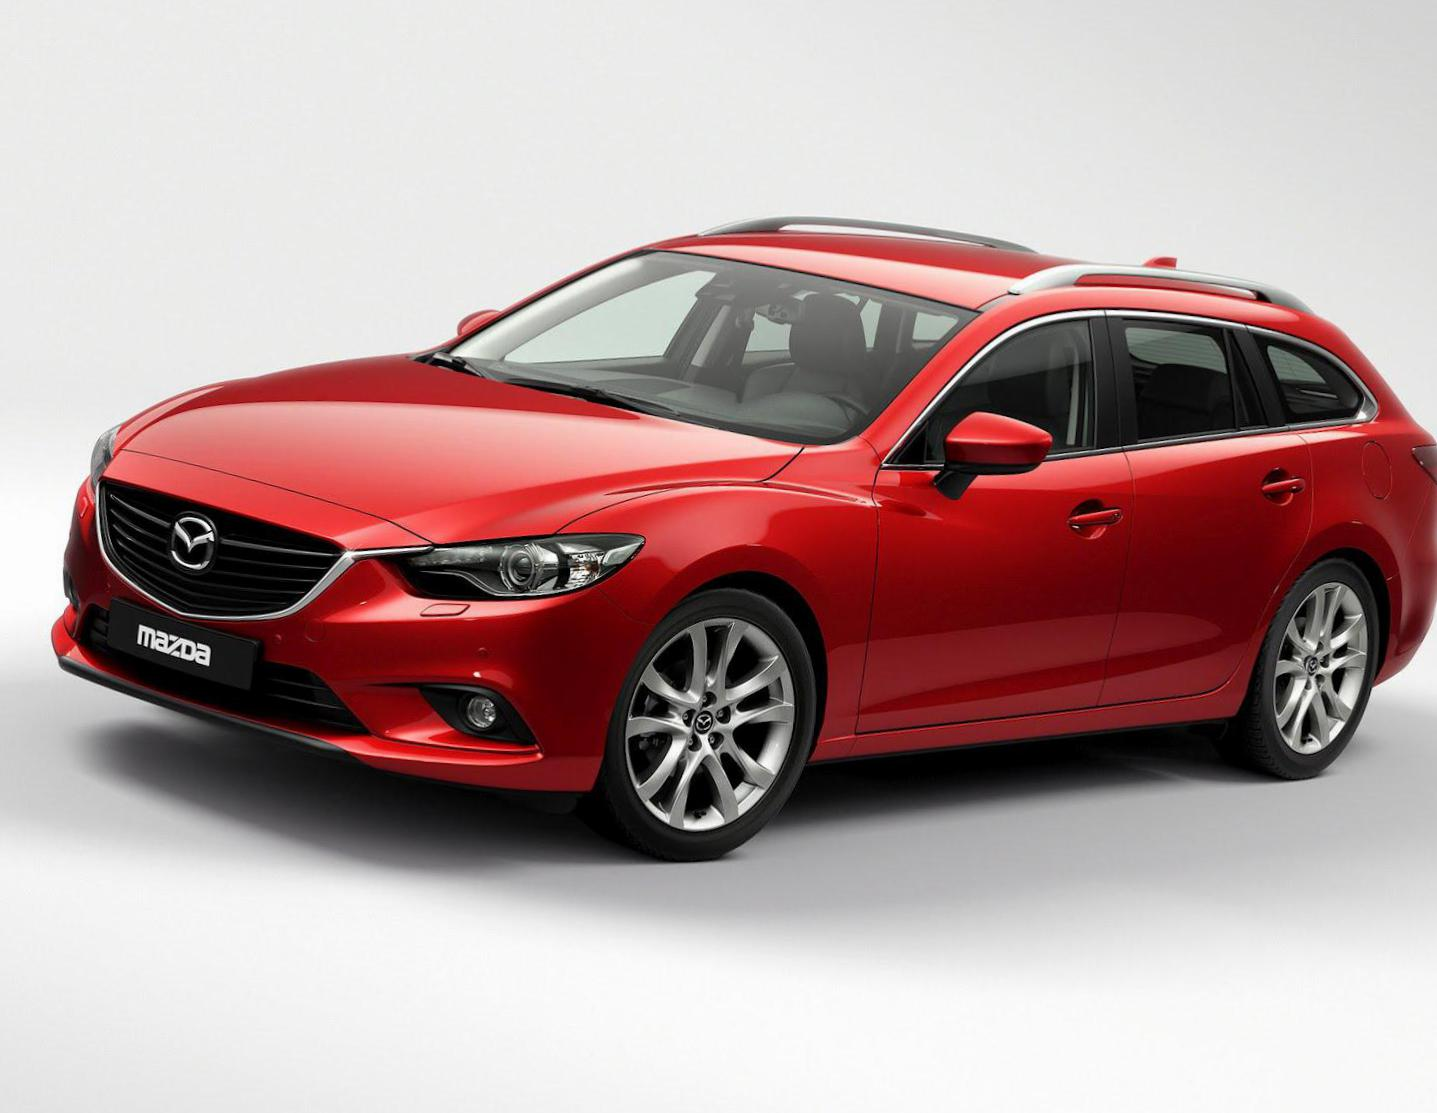 Mazda 6 Wagon configuration hatchback